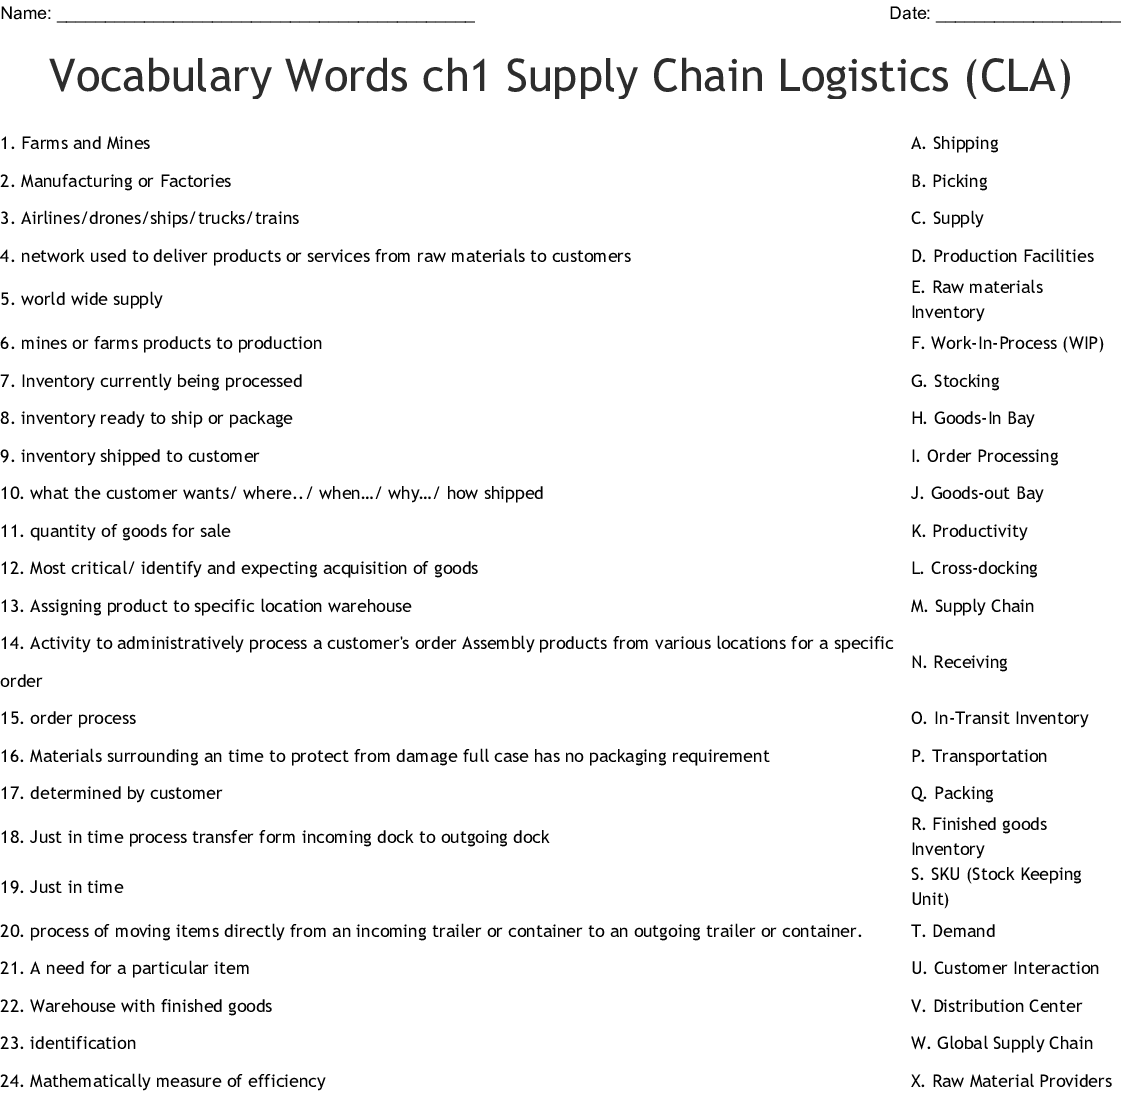 Vocabulary Words Ch1 Supply Chain Logistics Cla